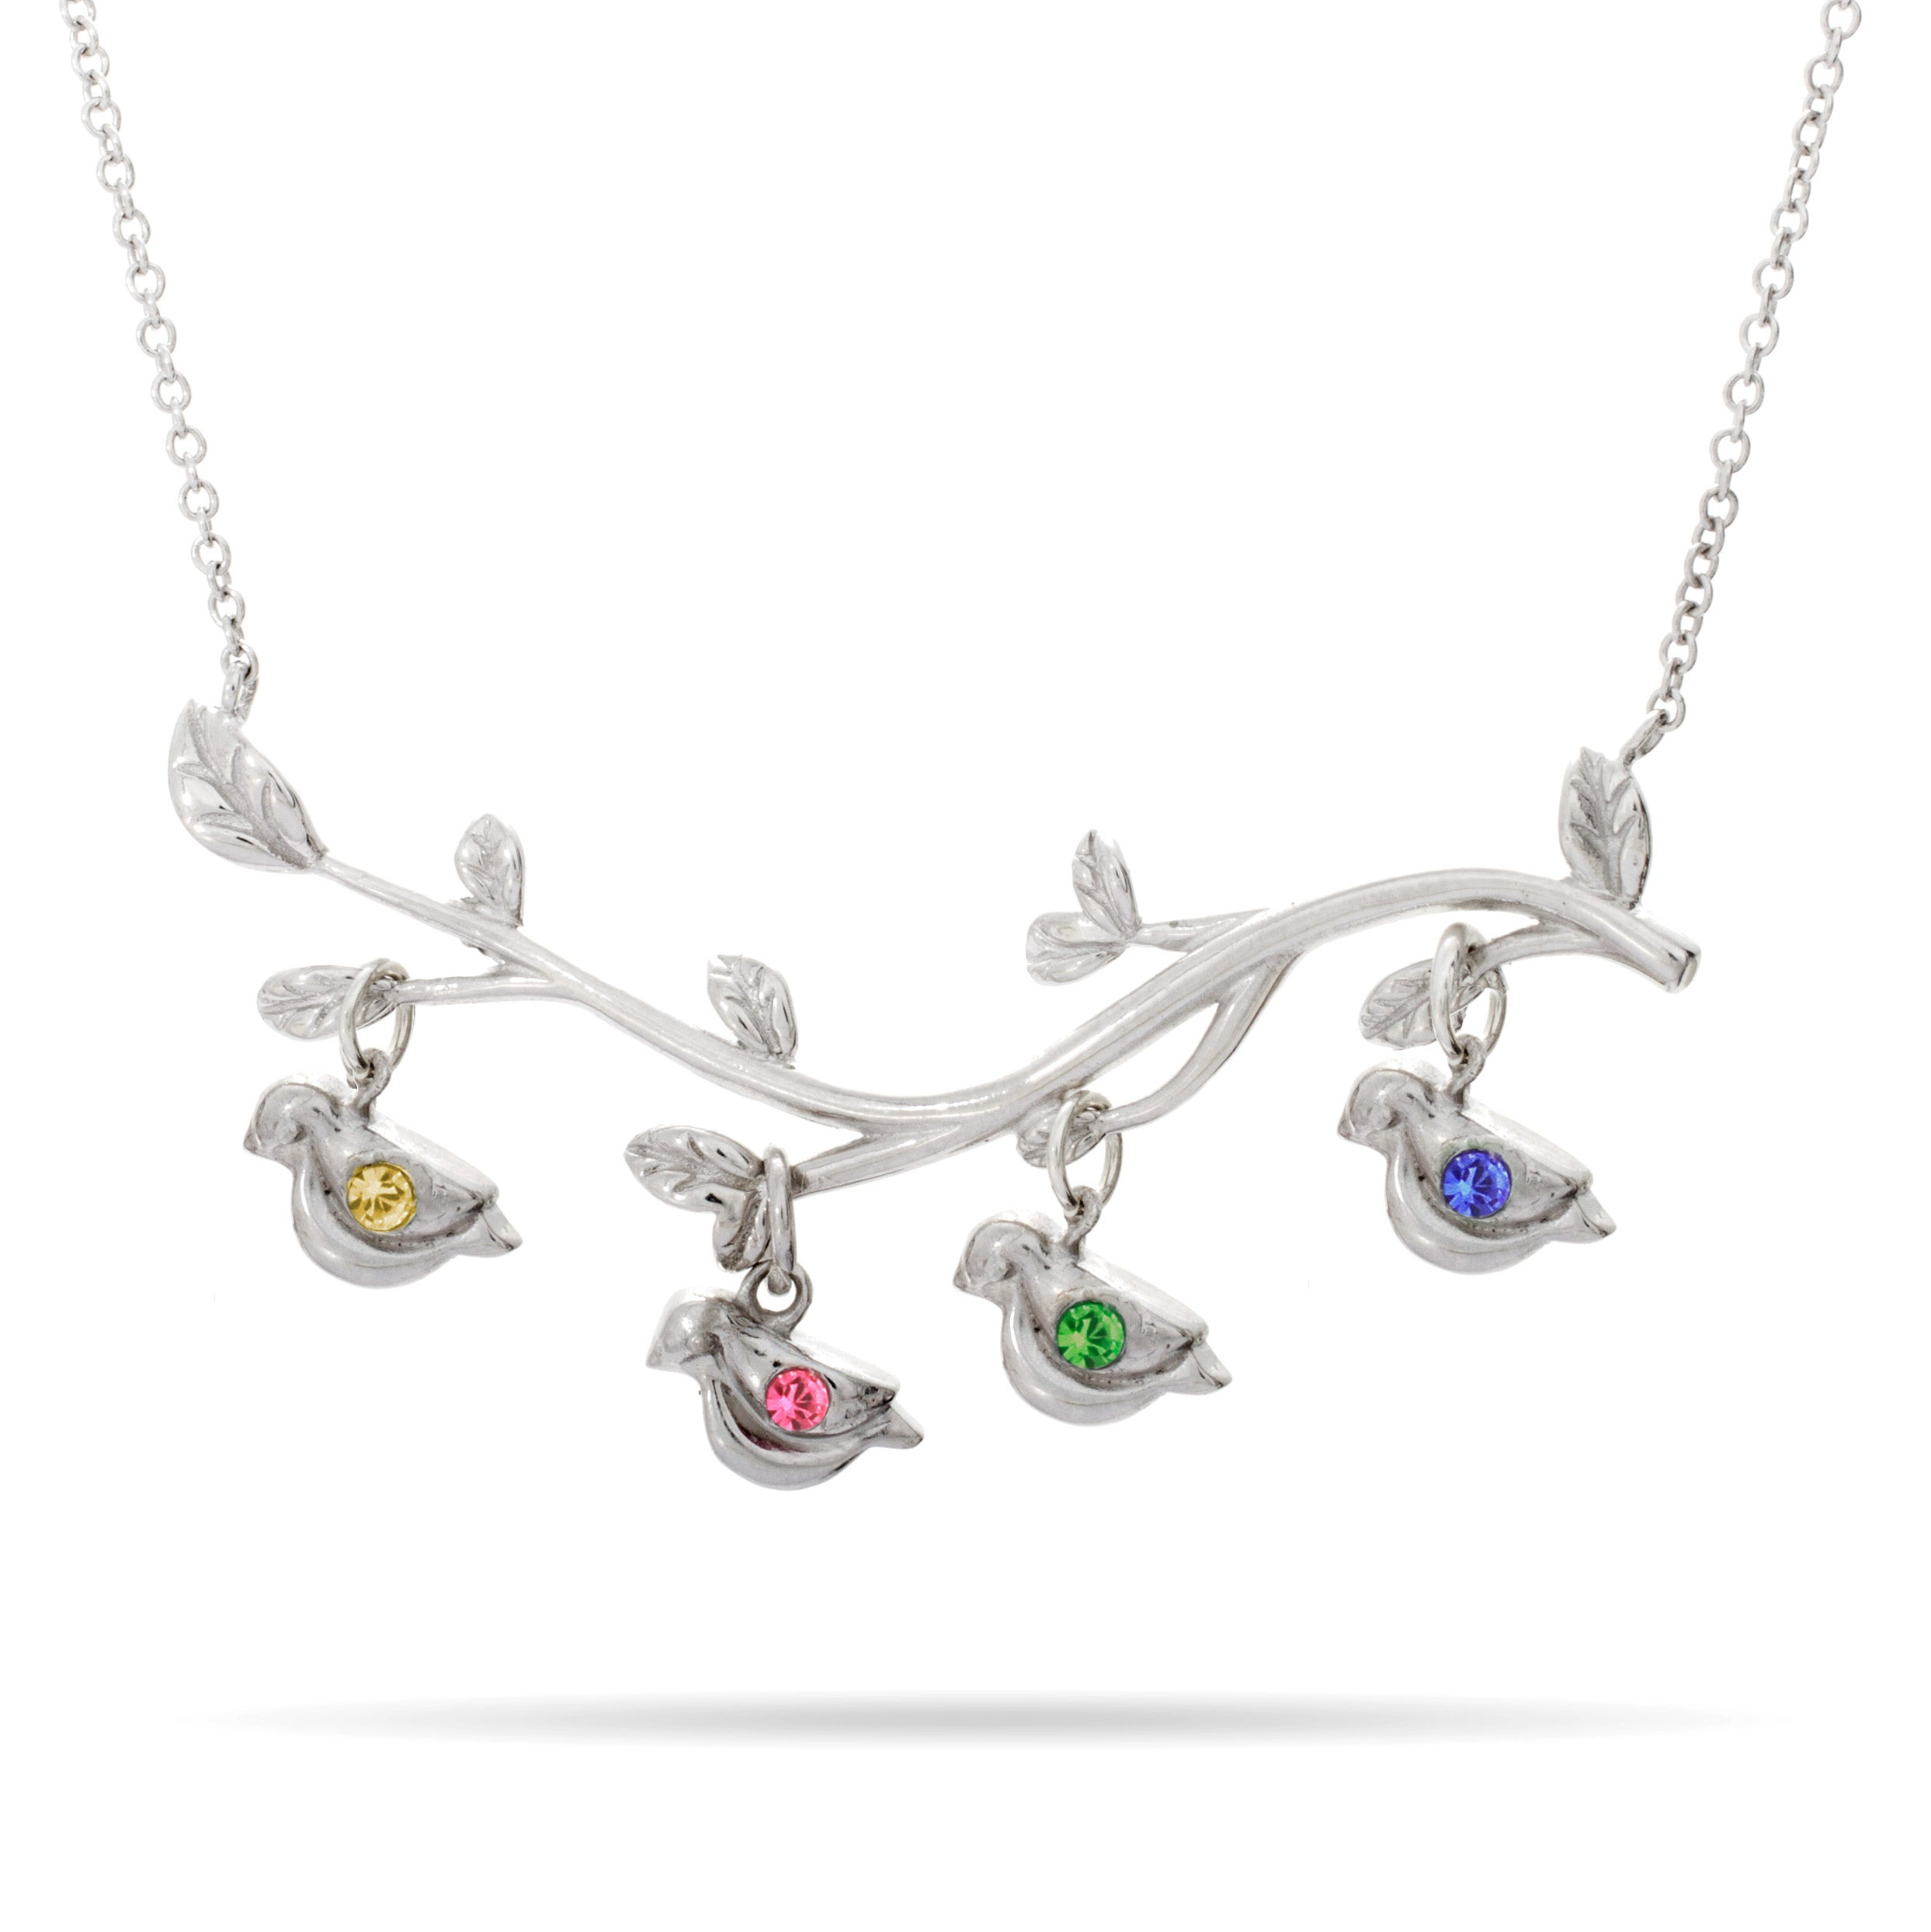 your necklaces birthstone simulated own in june v silver stones mothers sterling pendant zales create mother necklace s personalized p heart